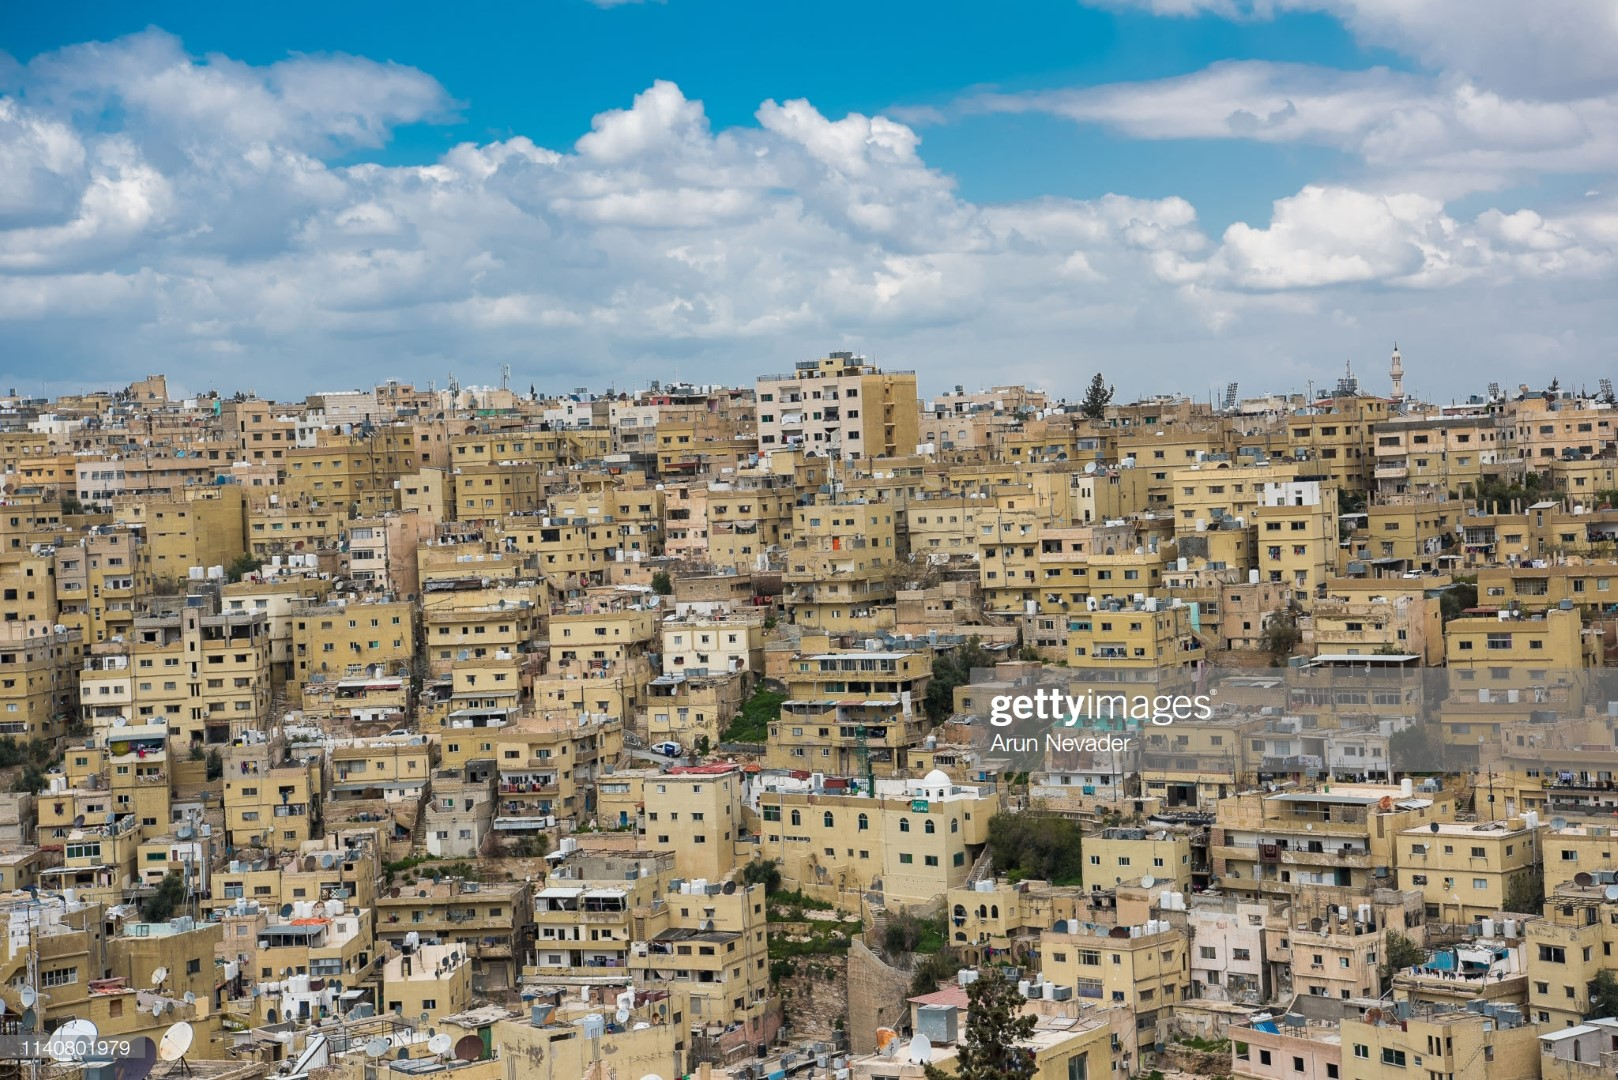 AMMAN, JORDAN - APRIL 02: A view of the city on April 2, 2019 in Amman, Jordan. (Photo by Arun Nevader/Getty Images for Jordan Fashion Week)